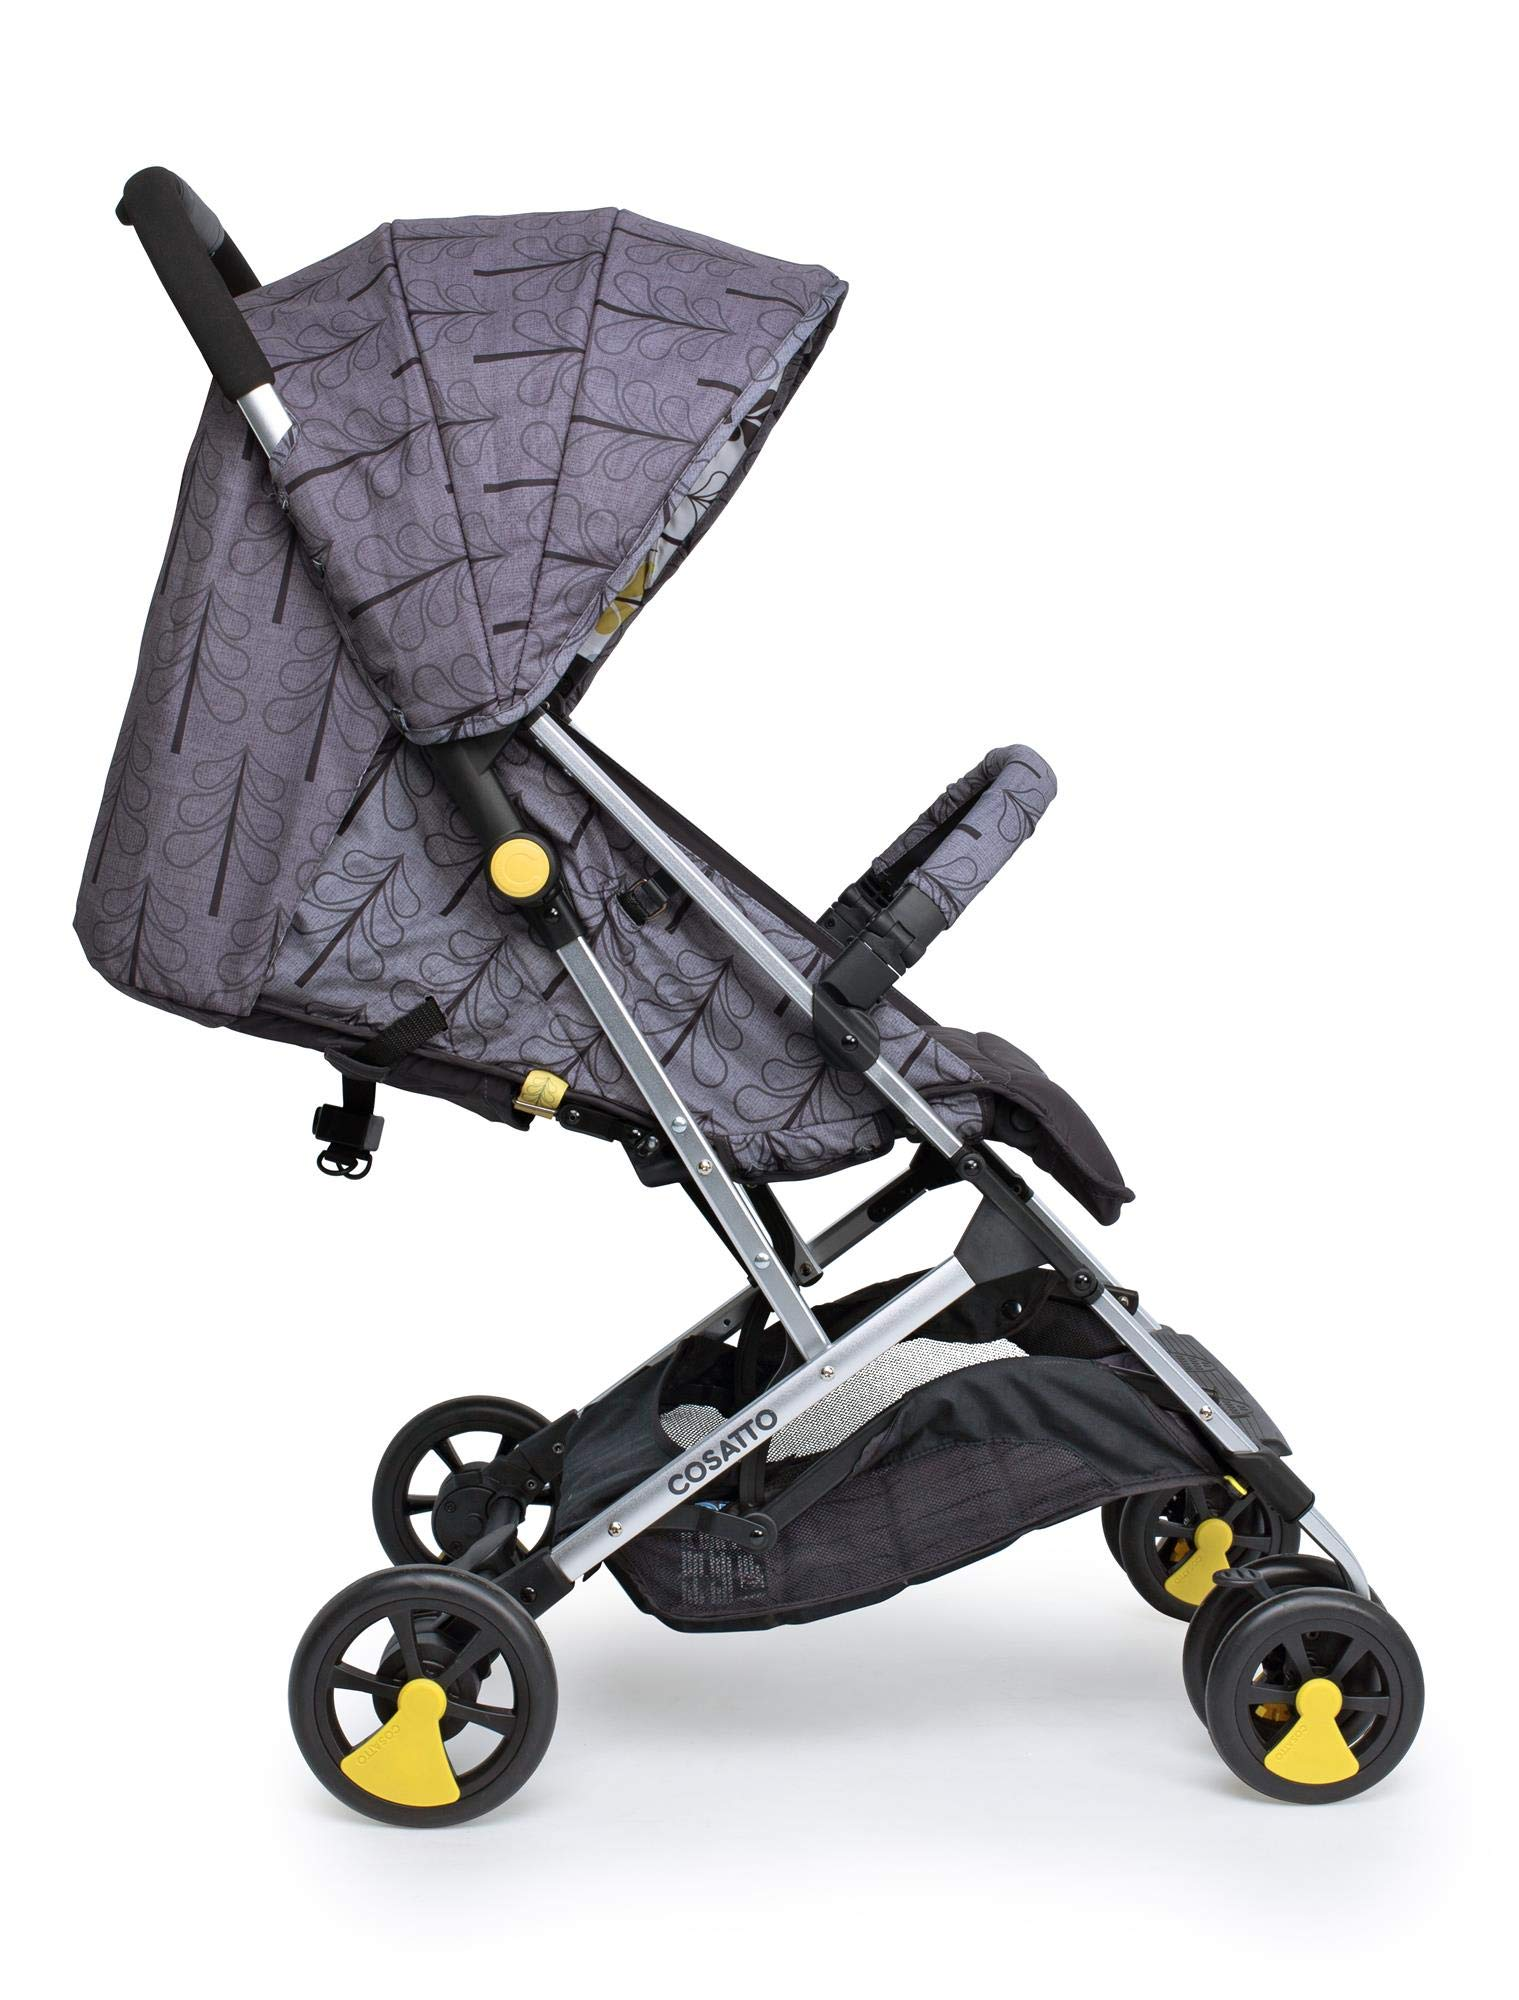 Cosatto Woosh 2 Stroller Fika Forest with raincover and Bumper bar Birth to 25kg Cosatto INCLUDES: The pushchair itself, Raincover, Bumper bar,4 year guarantee(UK and Ireland only) Suitable from birth to max weight of 25kg. Lets your toddler use it for even longer. Lightweight, sturdy aluminium frame. Newborn recline. Lightweight waterproof Ripstop fabric on seat. Lockable swivel front wheels for quick manoeuvres Roomy seat for extra comfort. Removable bumper bar for extra support. Magic bell. Front & rear suspension for a smooth ride. 2